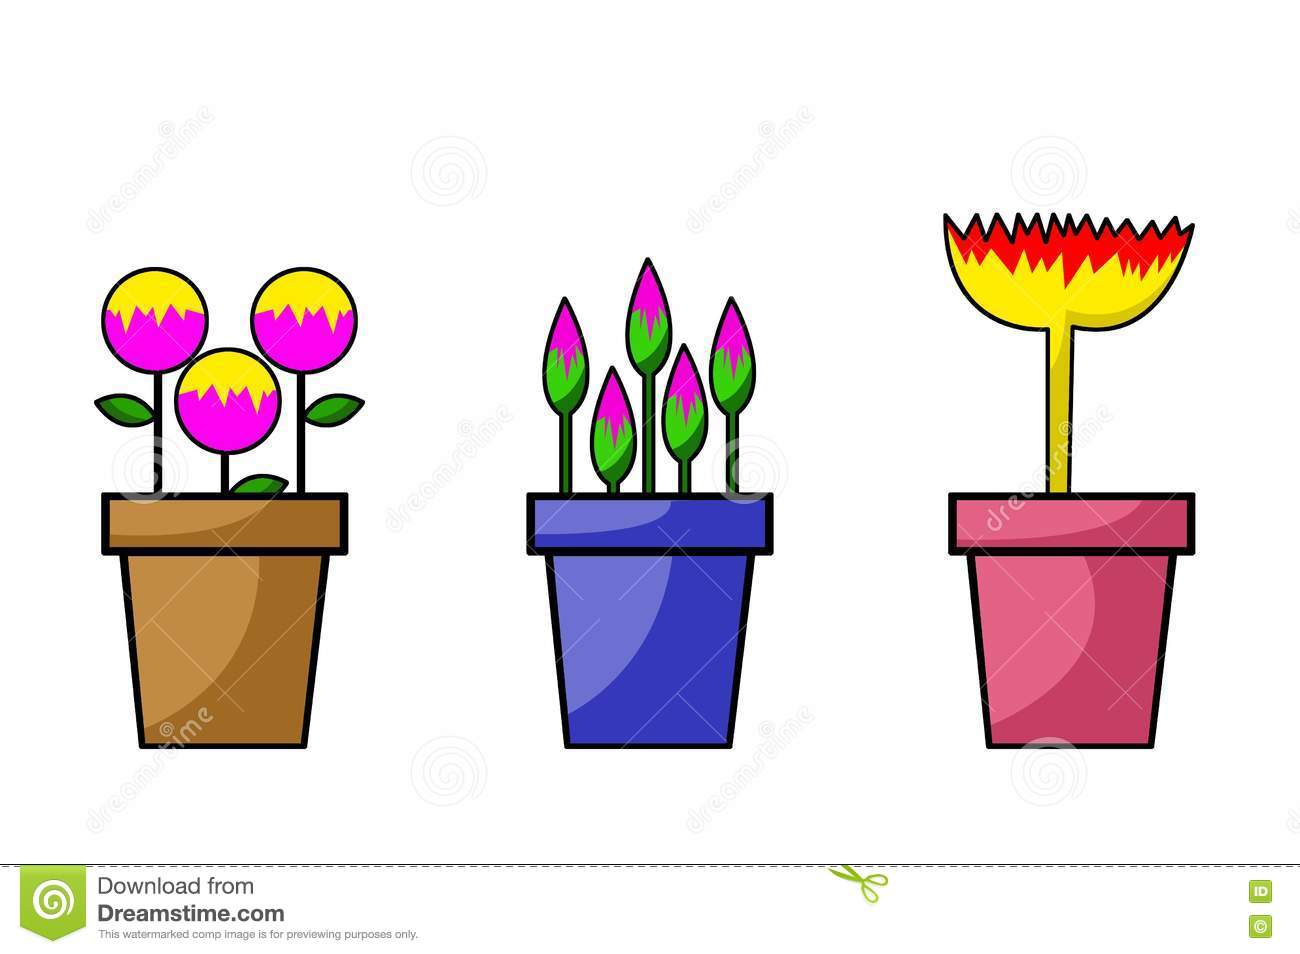 Flower pot cartoon illustration stock illustration illustration of download comp izmirmasajfo